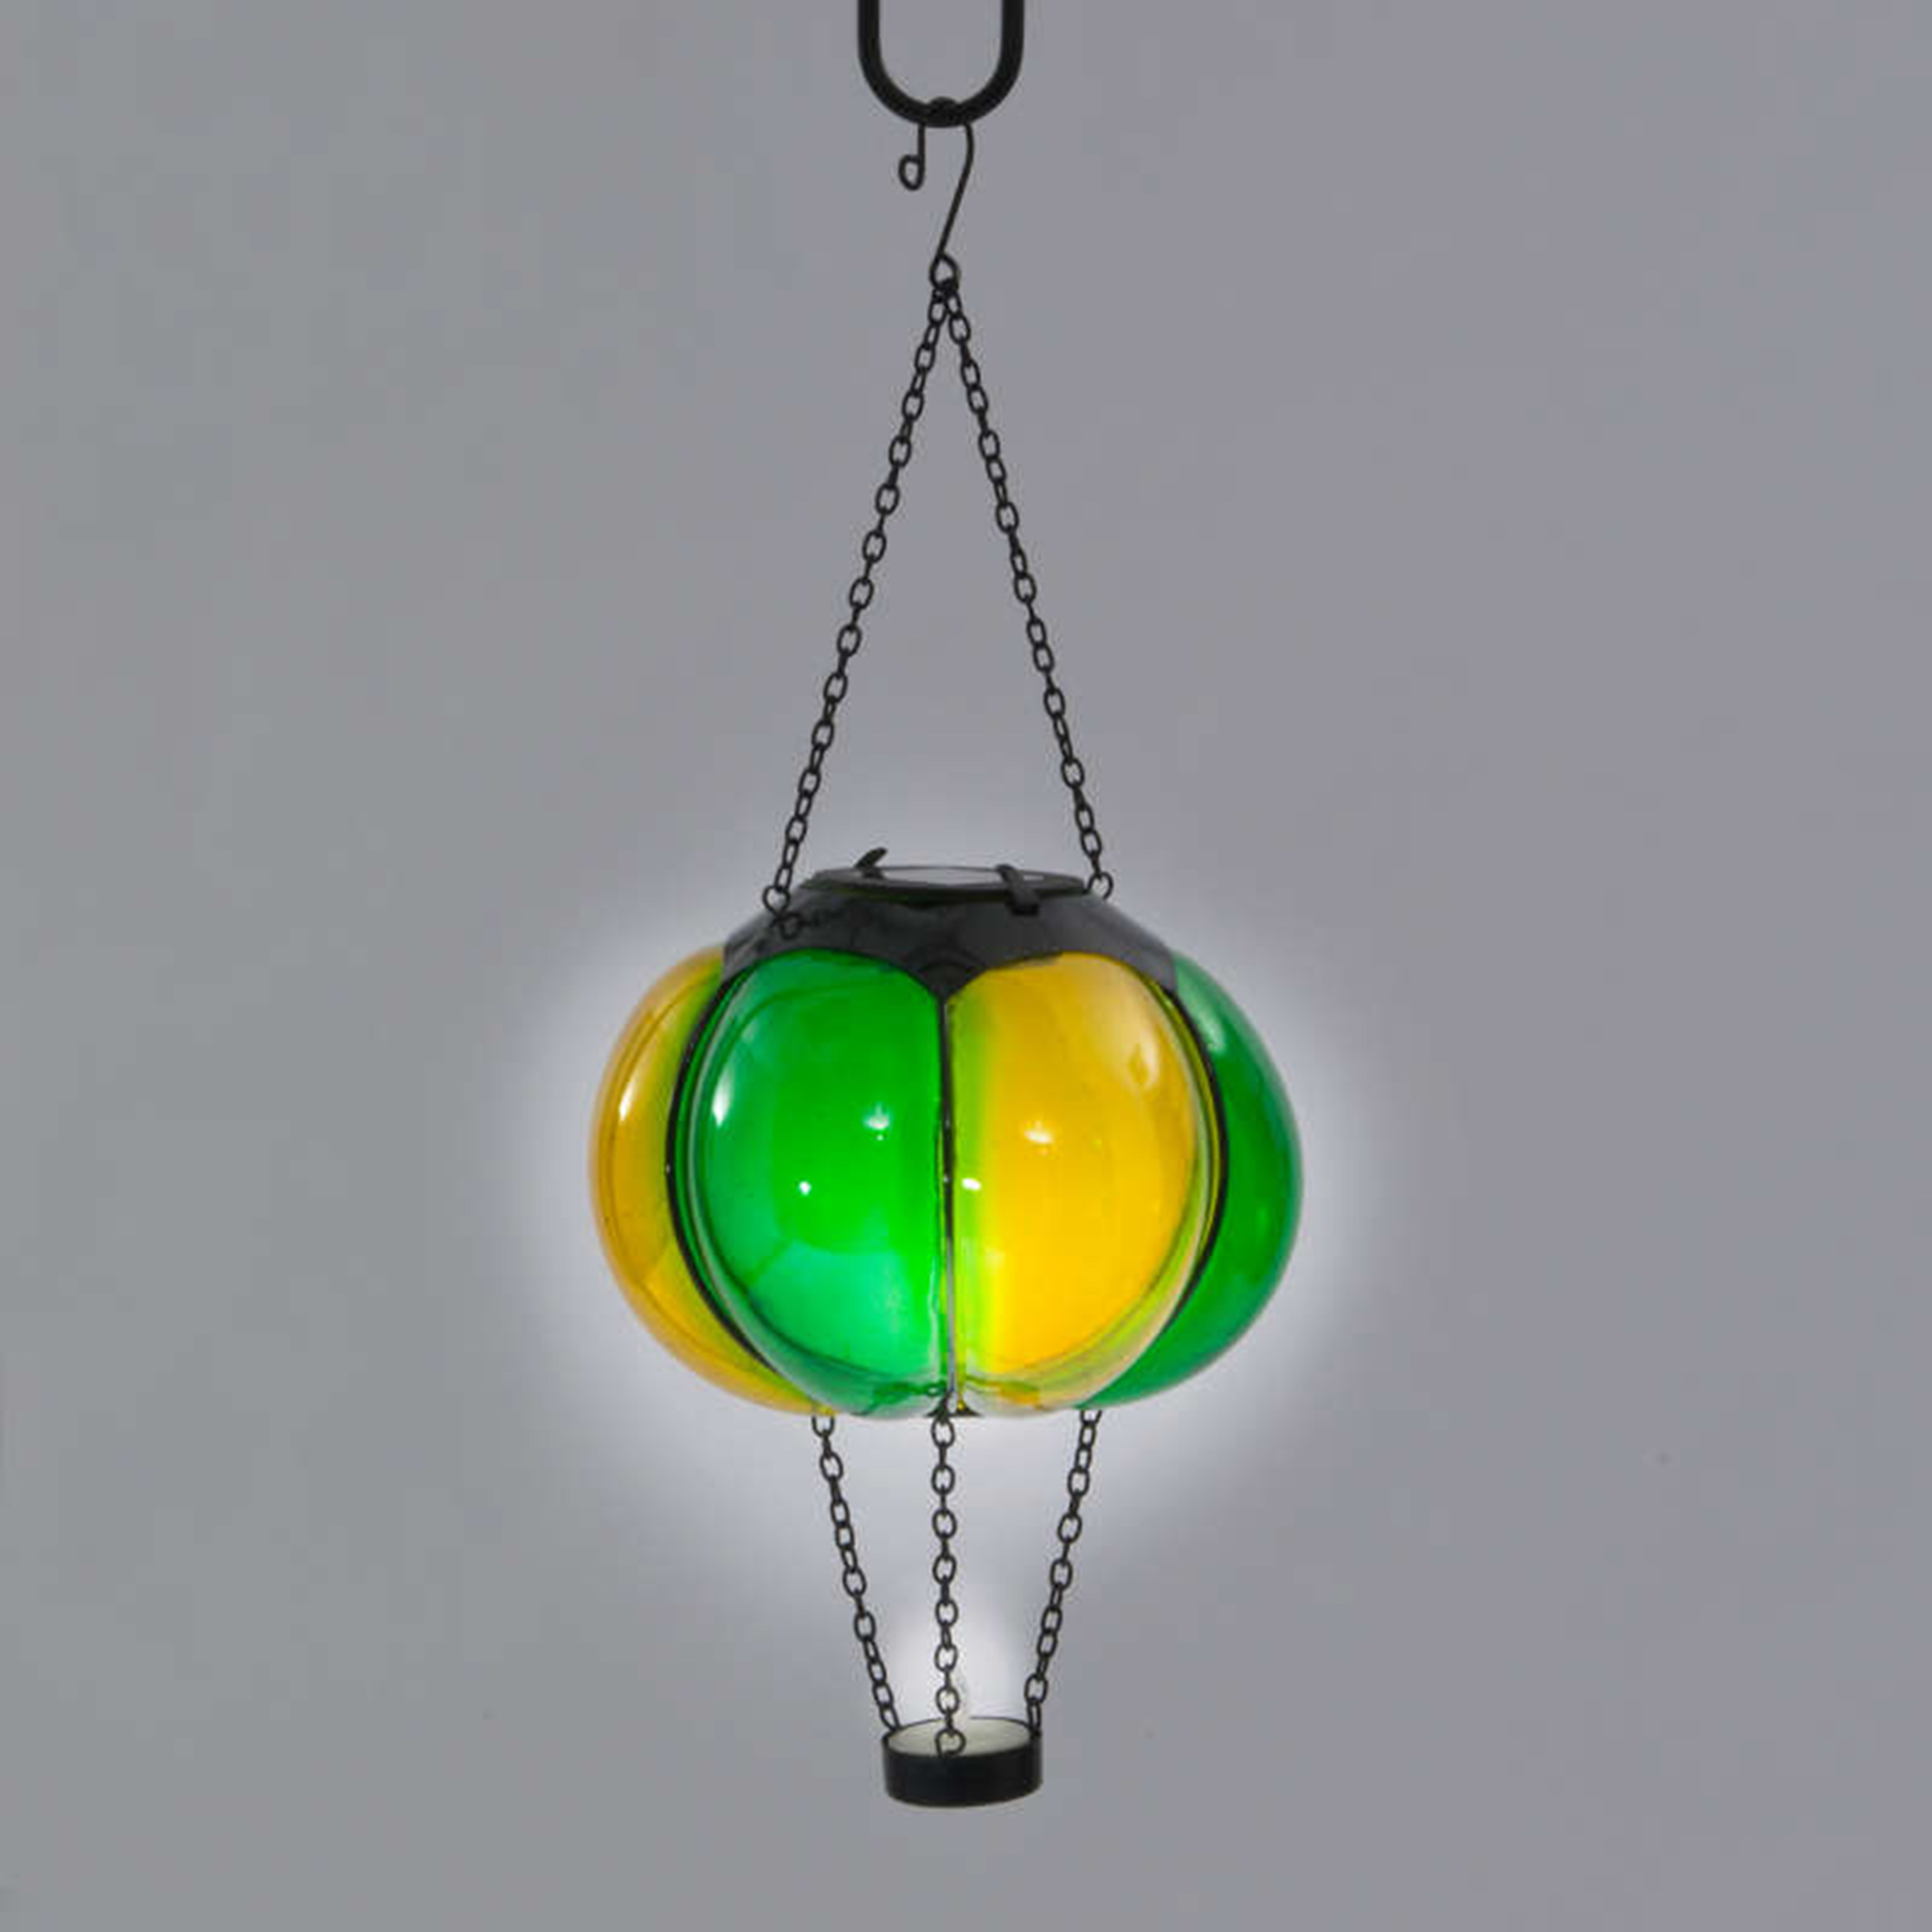 Gardens and Homes Direct Solar Balloon Light - Green & Yellow